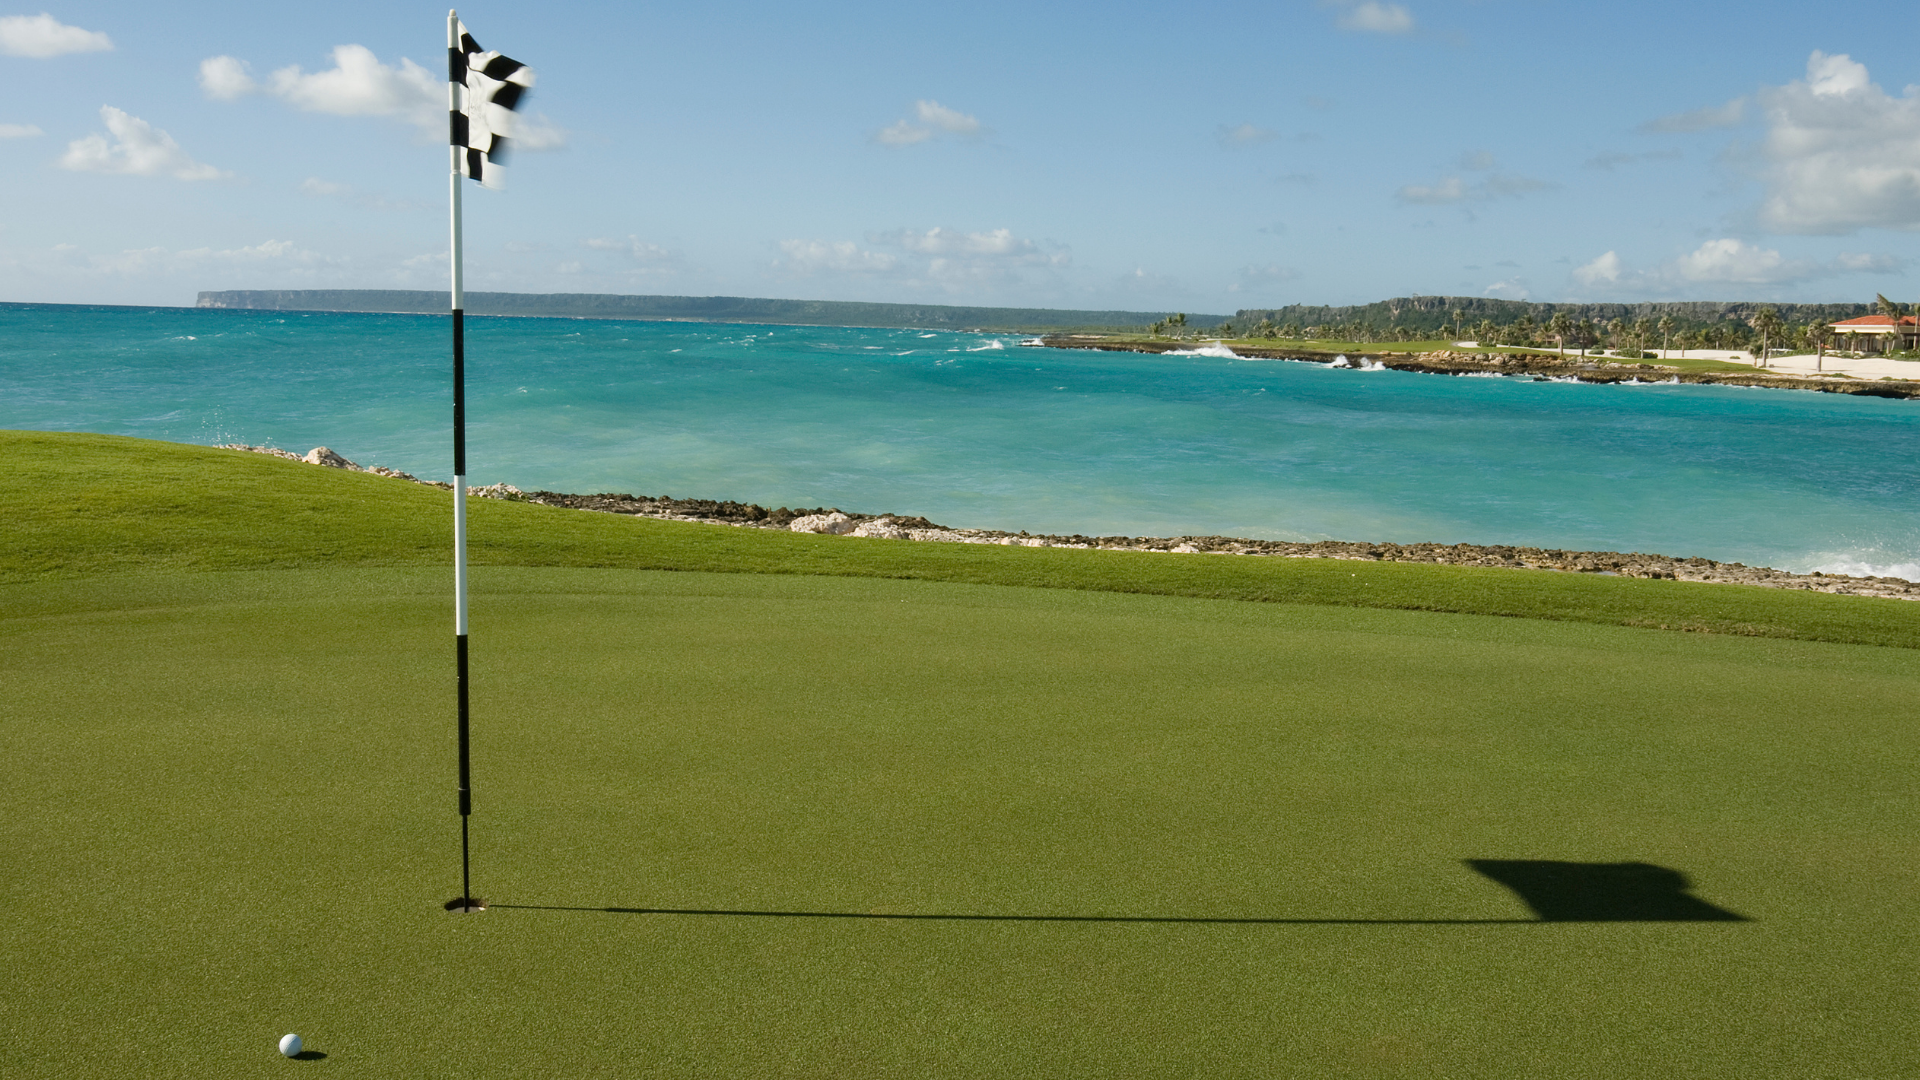 It's all about the right shot in Punta Cana